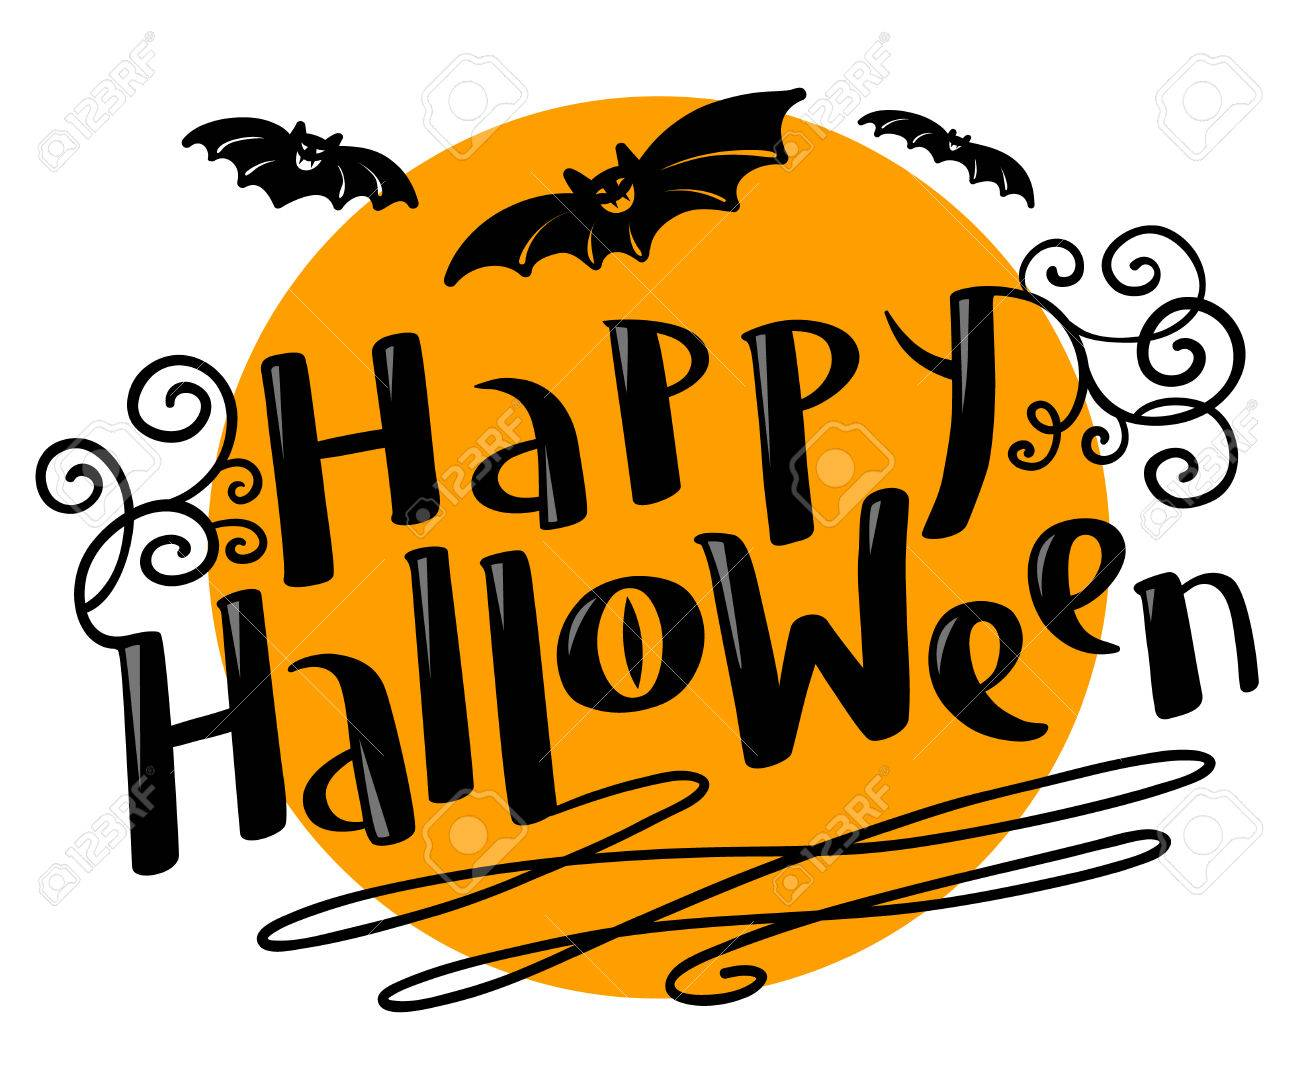 Happy halloween hand drawing lettering coposition with bats happy halloween hand drawing lettering coposition with bats silhouette celebration october vector illustration with kristyandbryce Images